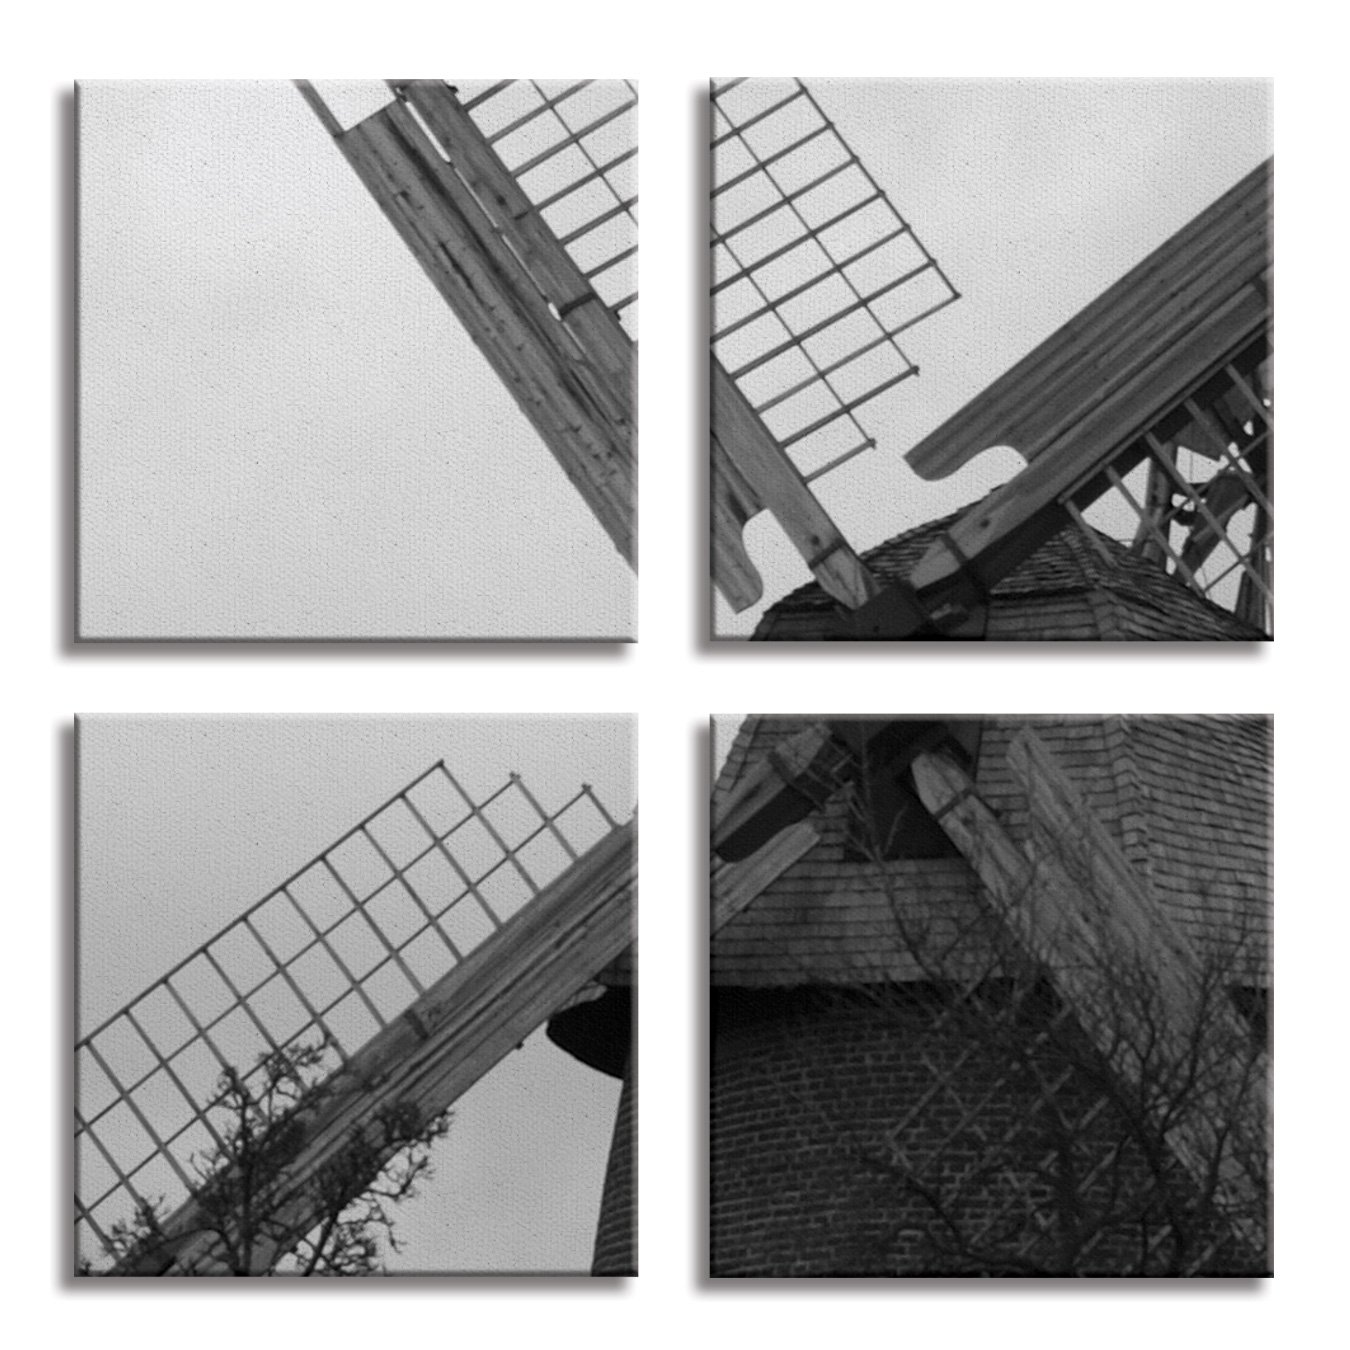 JP London 4 Panels 14in 4 Huge Gallery Wrap Canvas Wall Art Natural Windmill Power At Overall 28in QDCNV2033